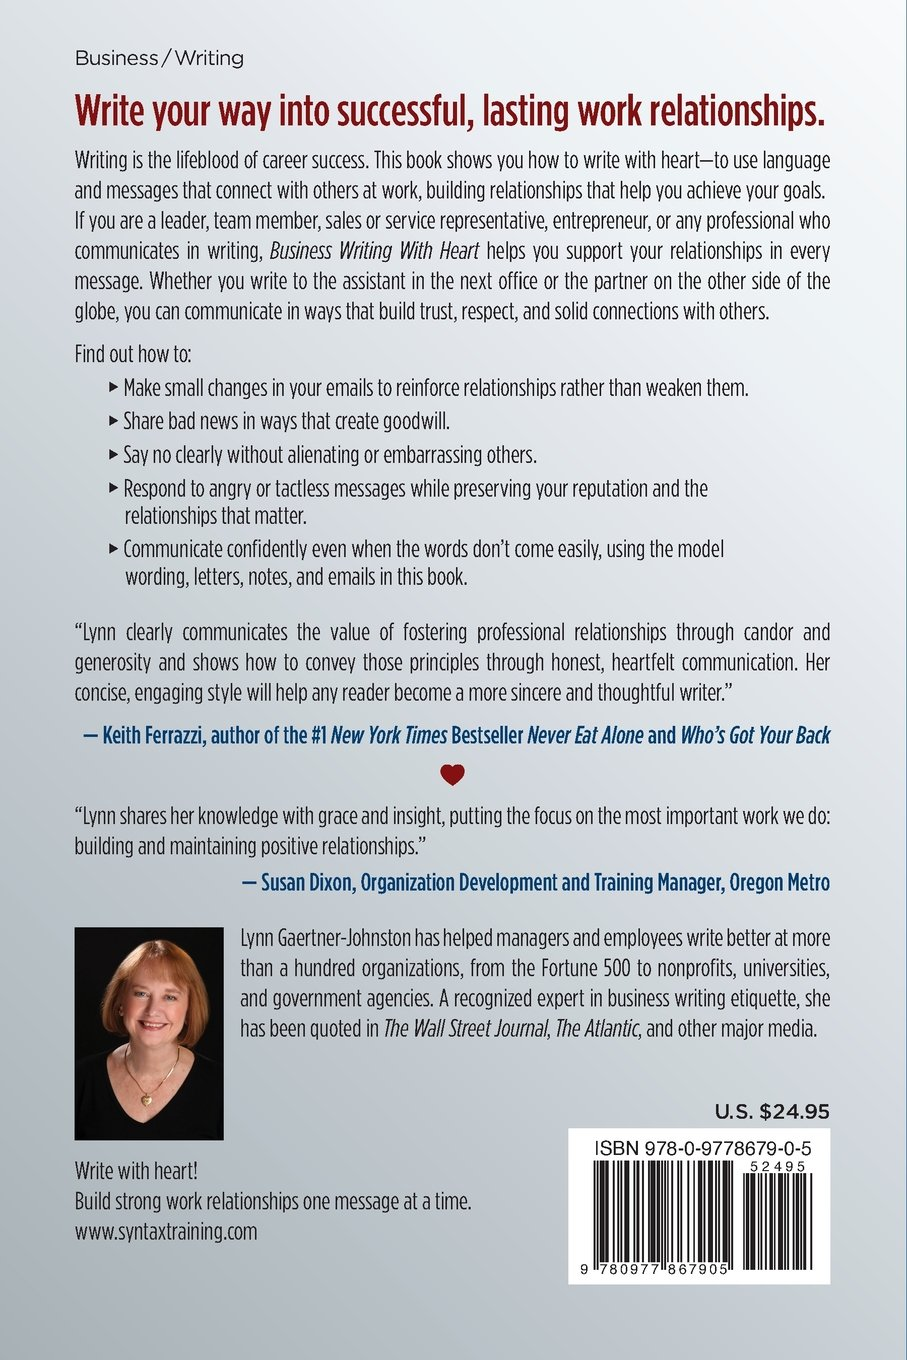 Business Writing With Heart How To Build Great Work Relationships